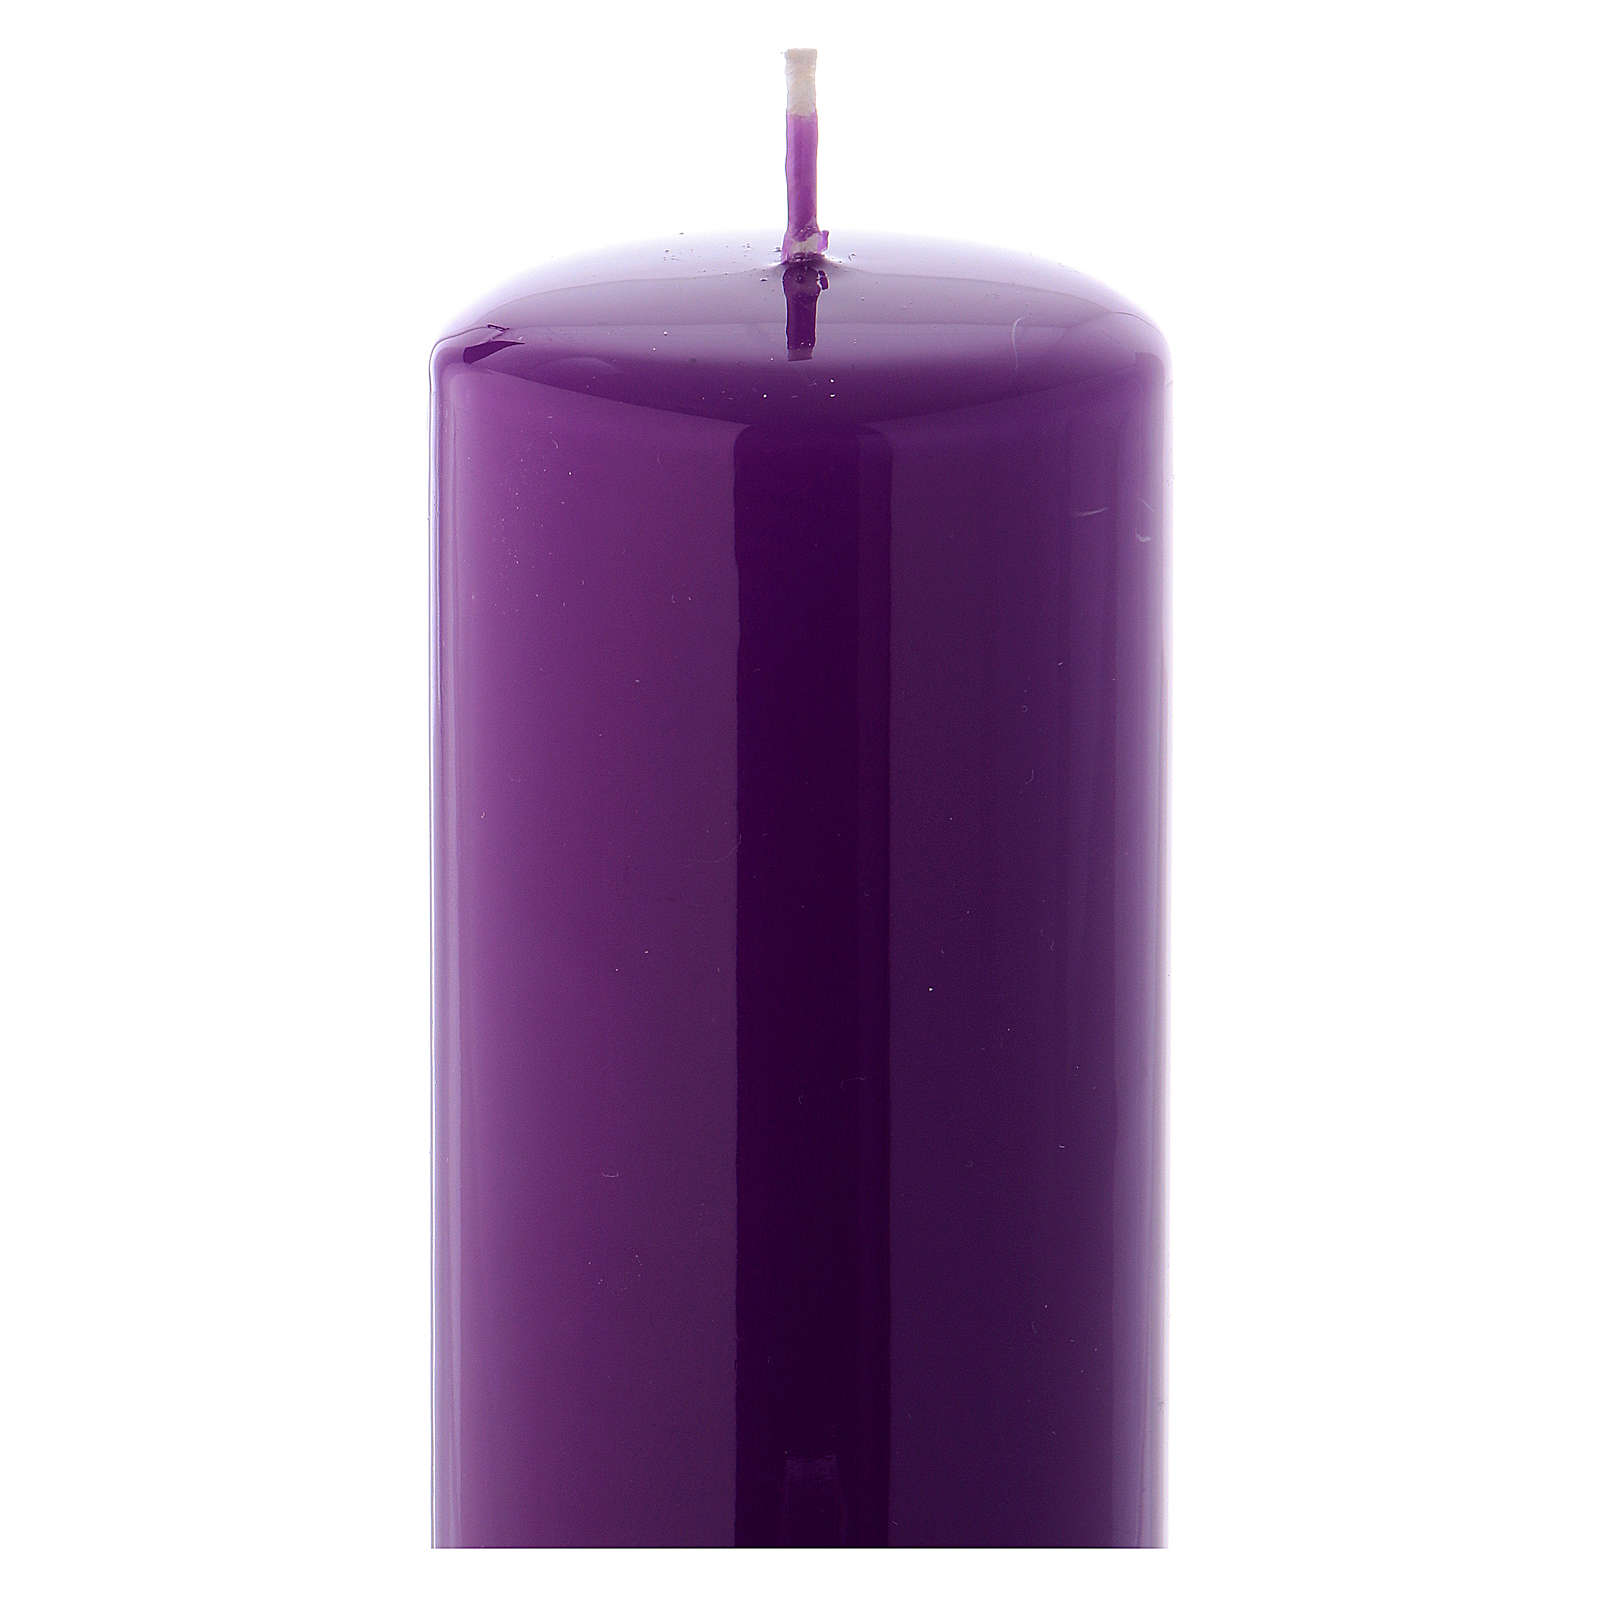 Purple altar candle 20x6 cm, Ceralacca collection 3